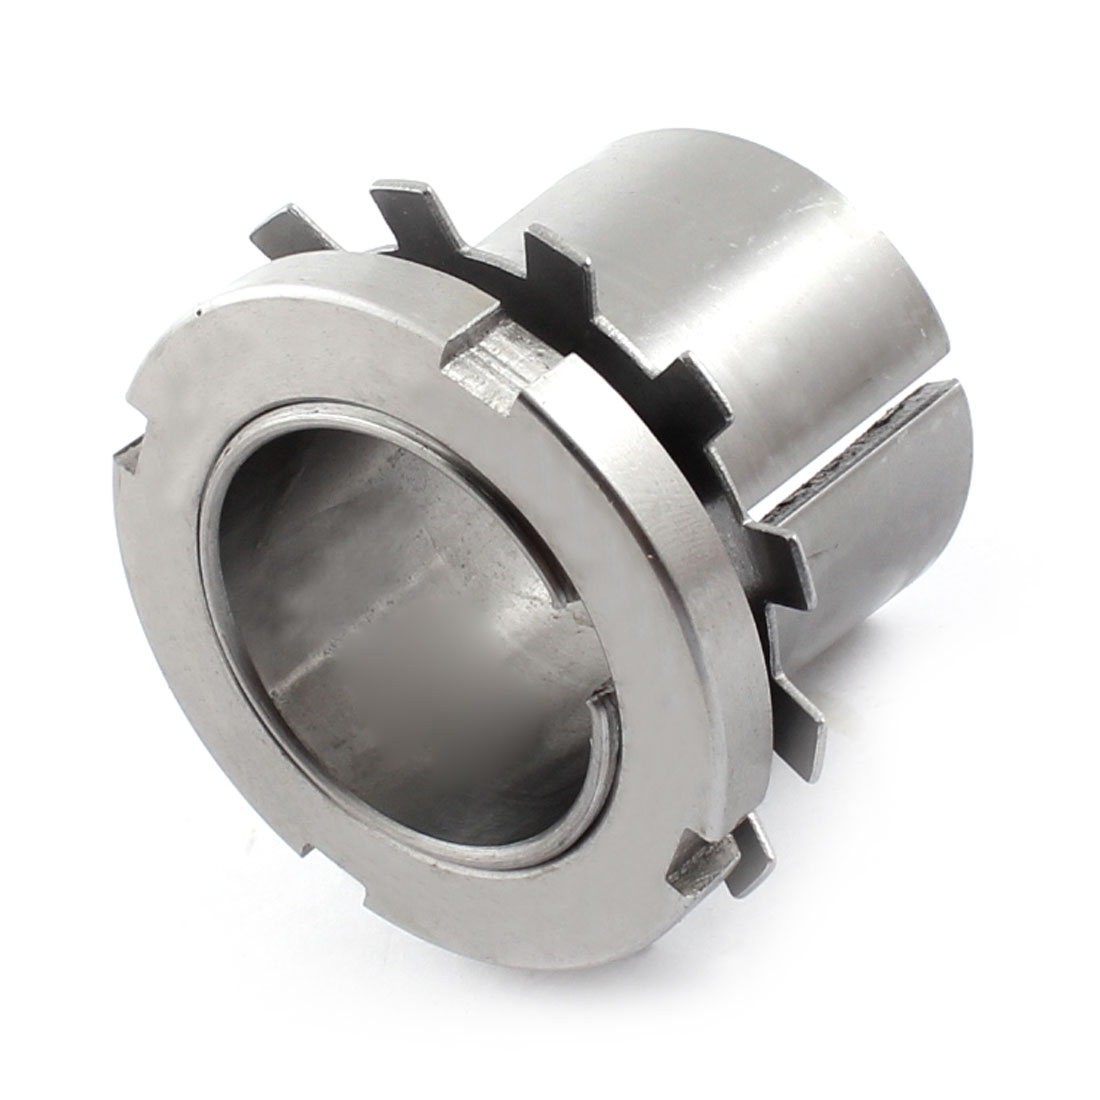 H2308 Silver Tone Metal Bearing Adapter Sleeve 35mm Bore Diameter